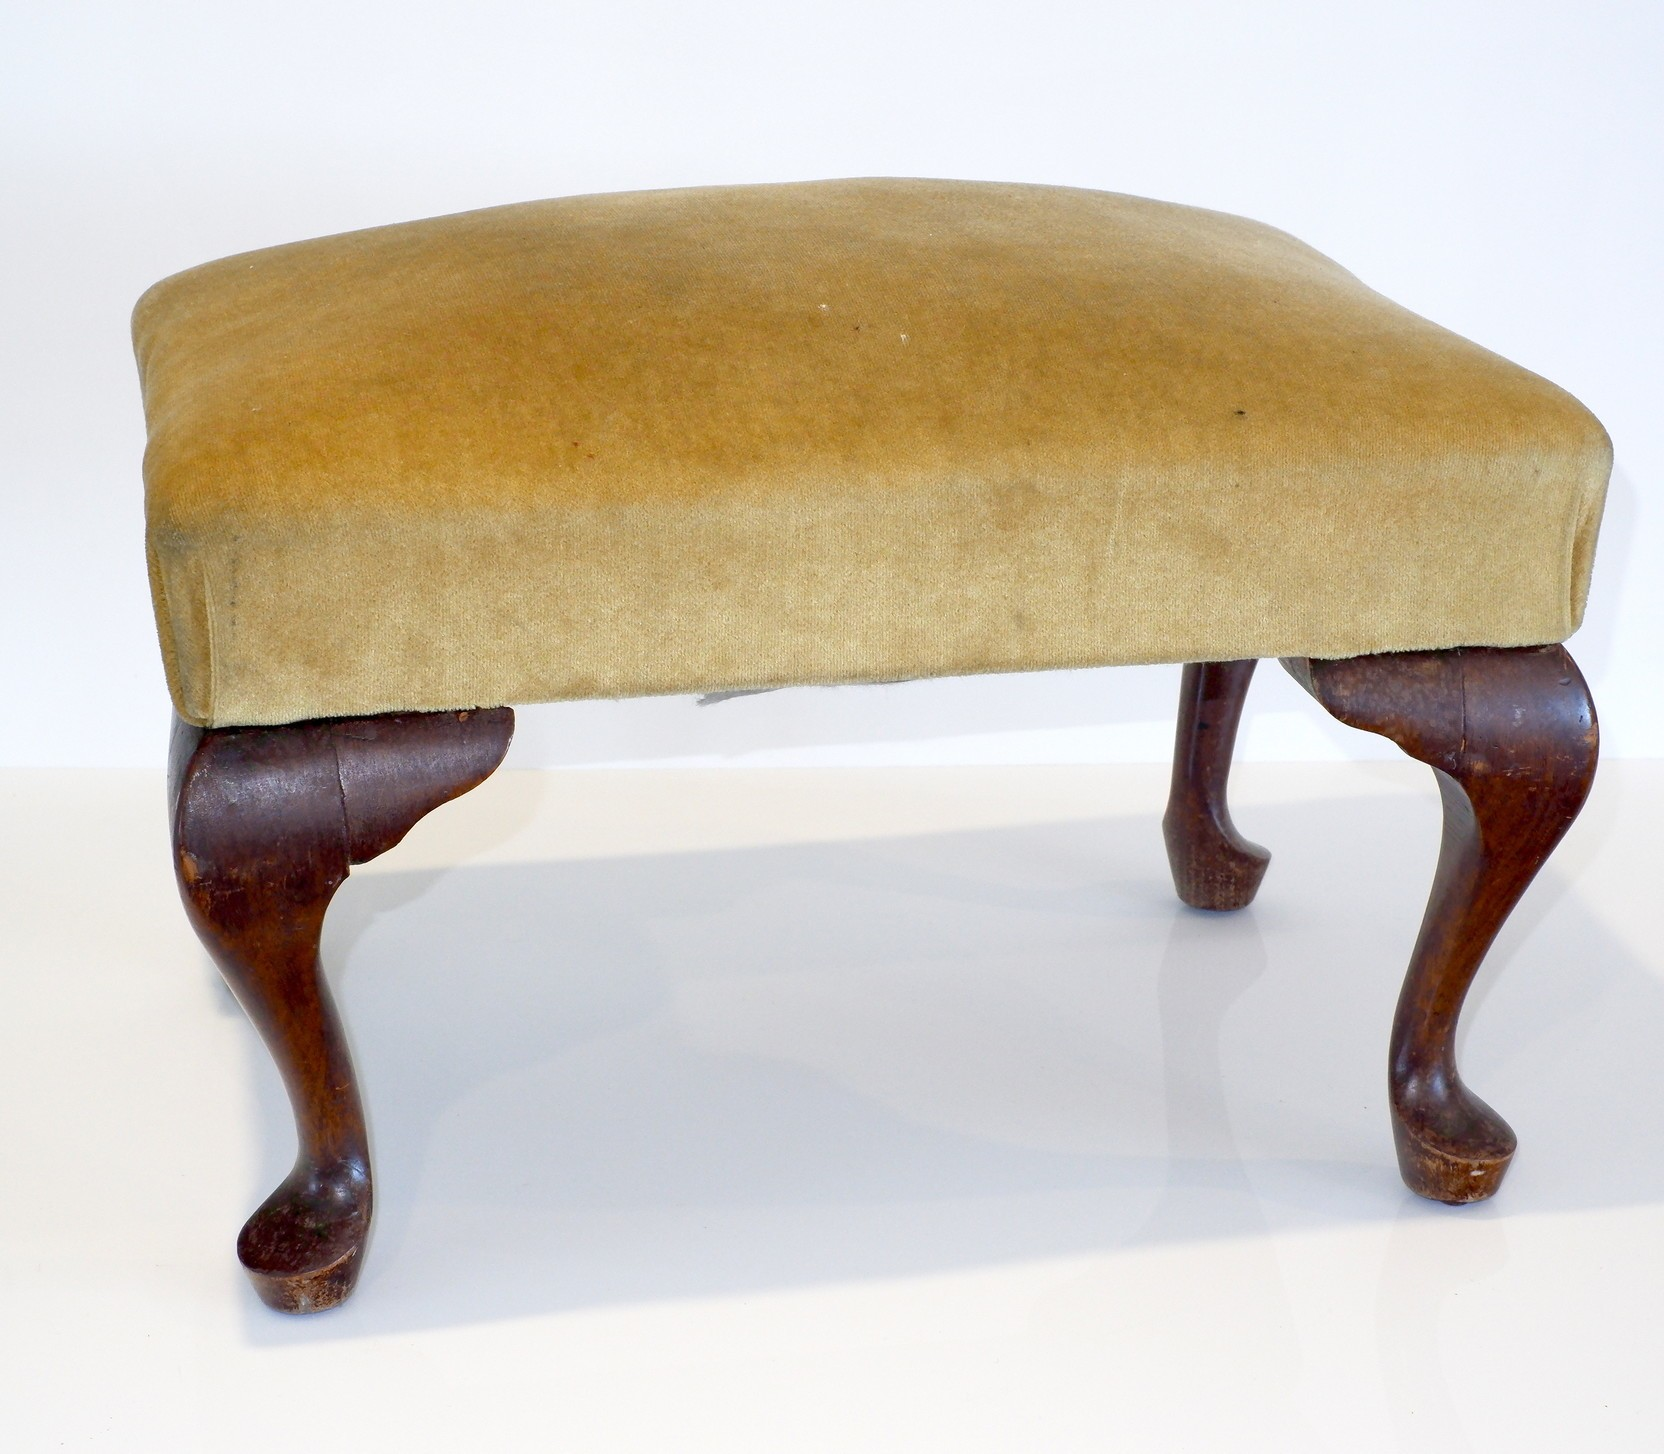 'Vintage Footstool with Cabriole Legs'